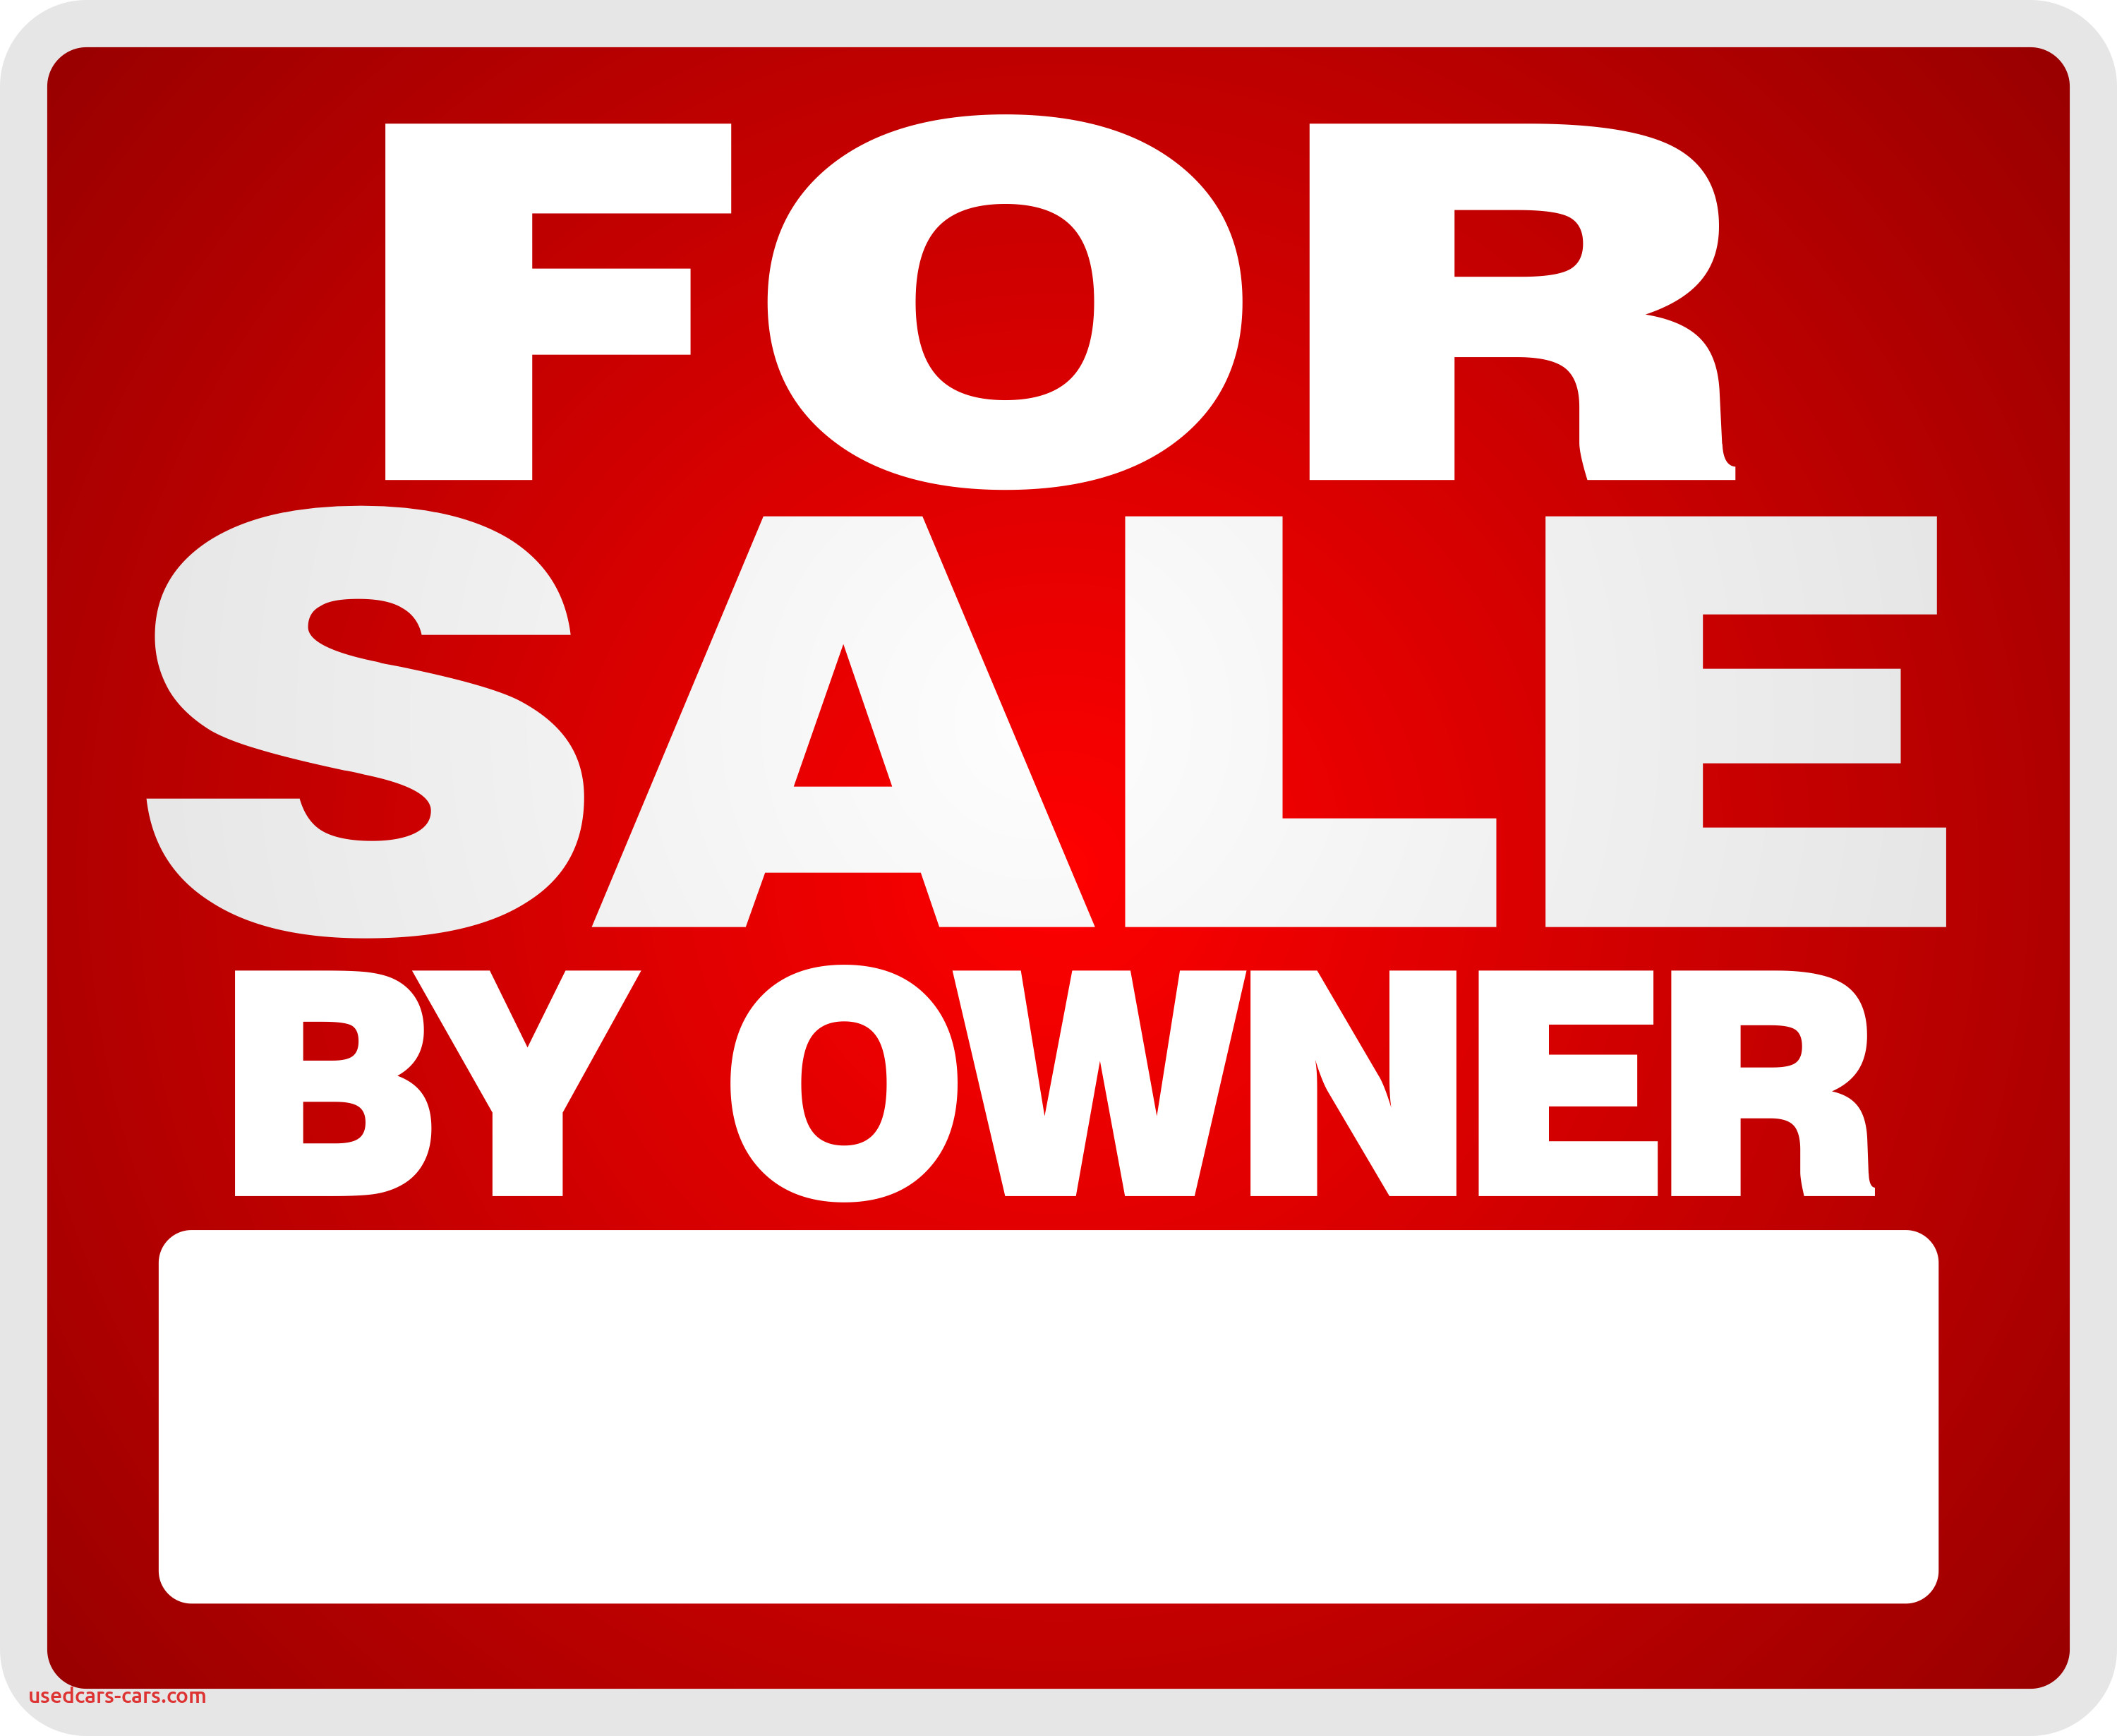 Used Cars for Sale $10000 by Owner New for Sale by Owner In A Seller's Market Real Estate Tips